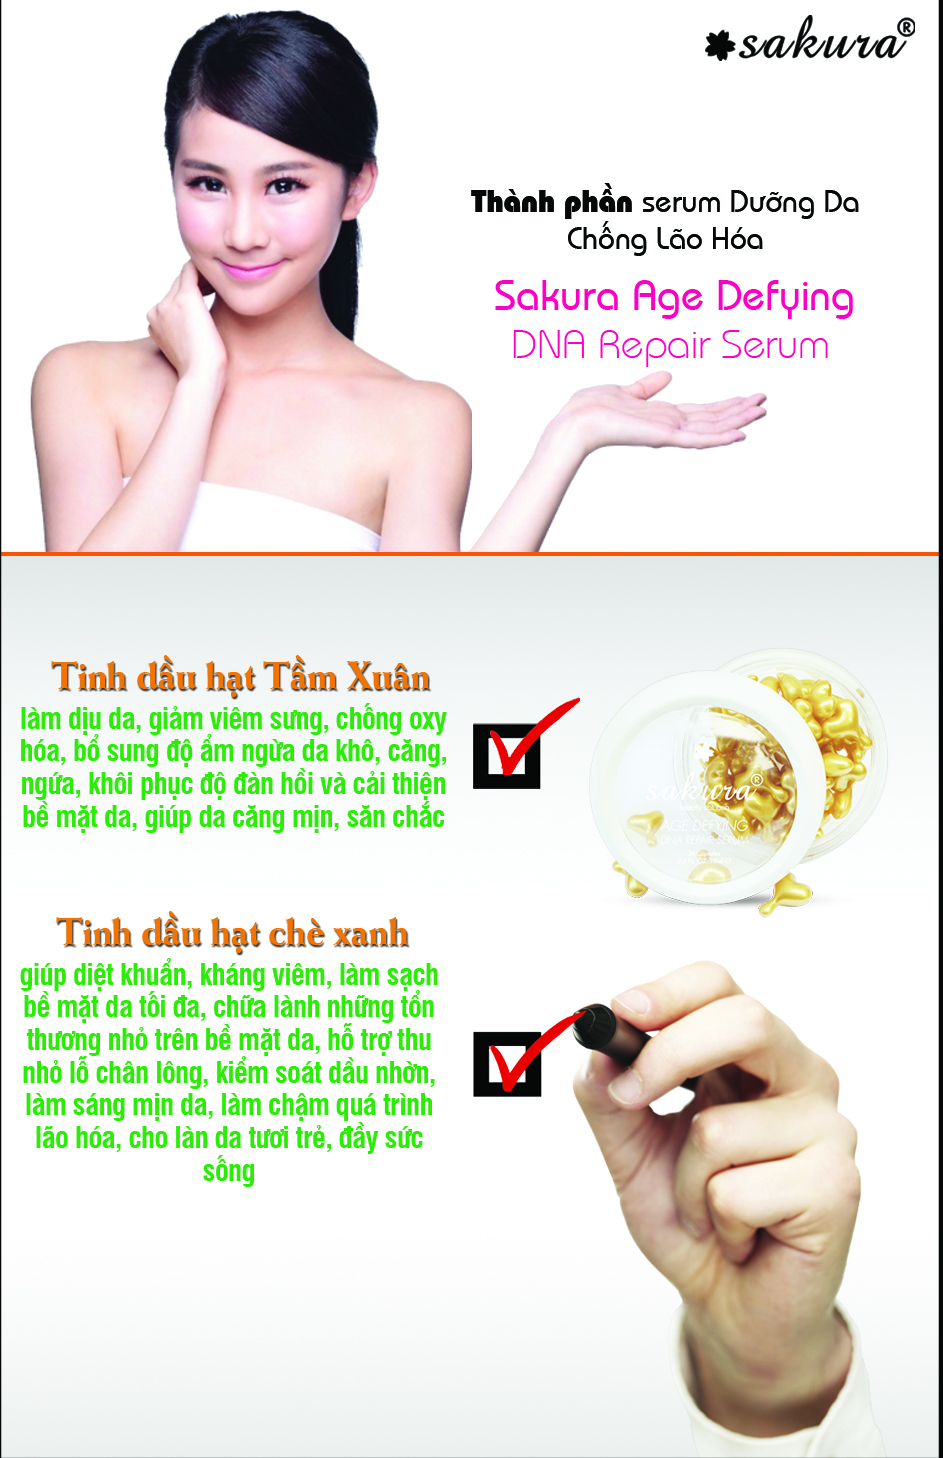 thanh-phan-serum-chong-lao-hoa-Sakura-Age-Defying-DNA-Repair-Serum